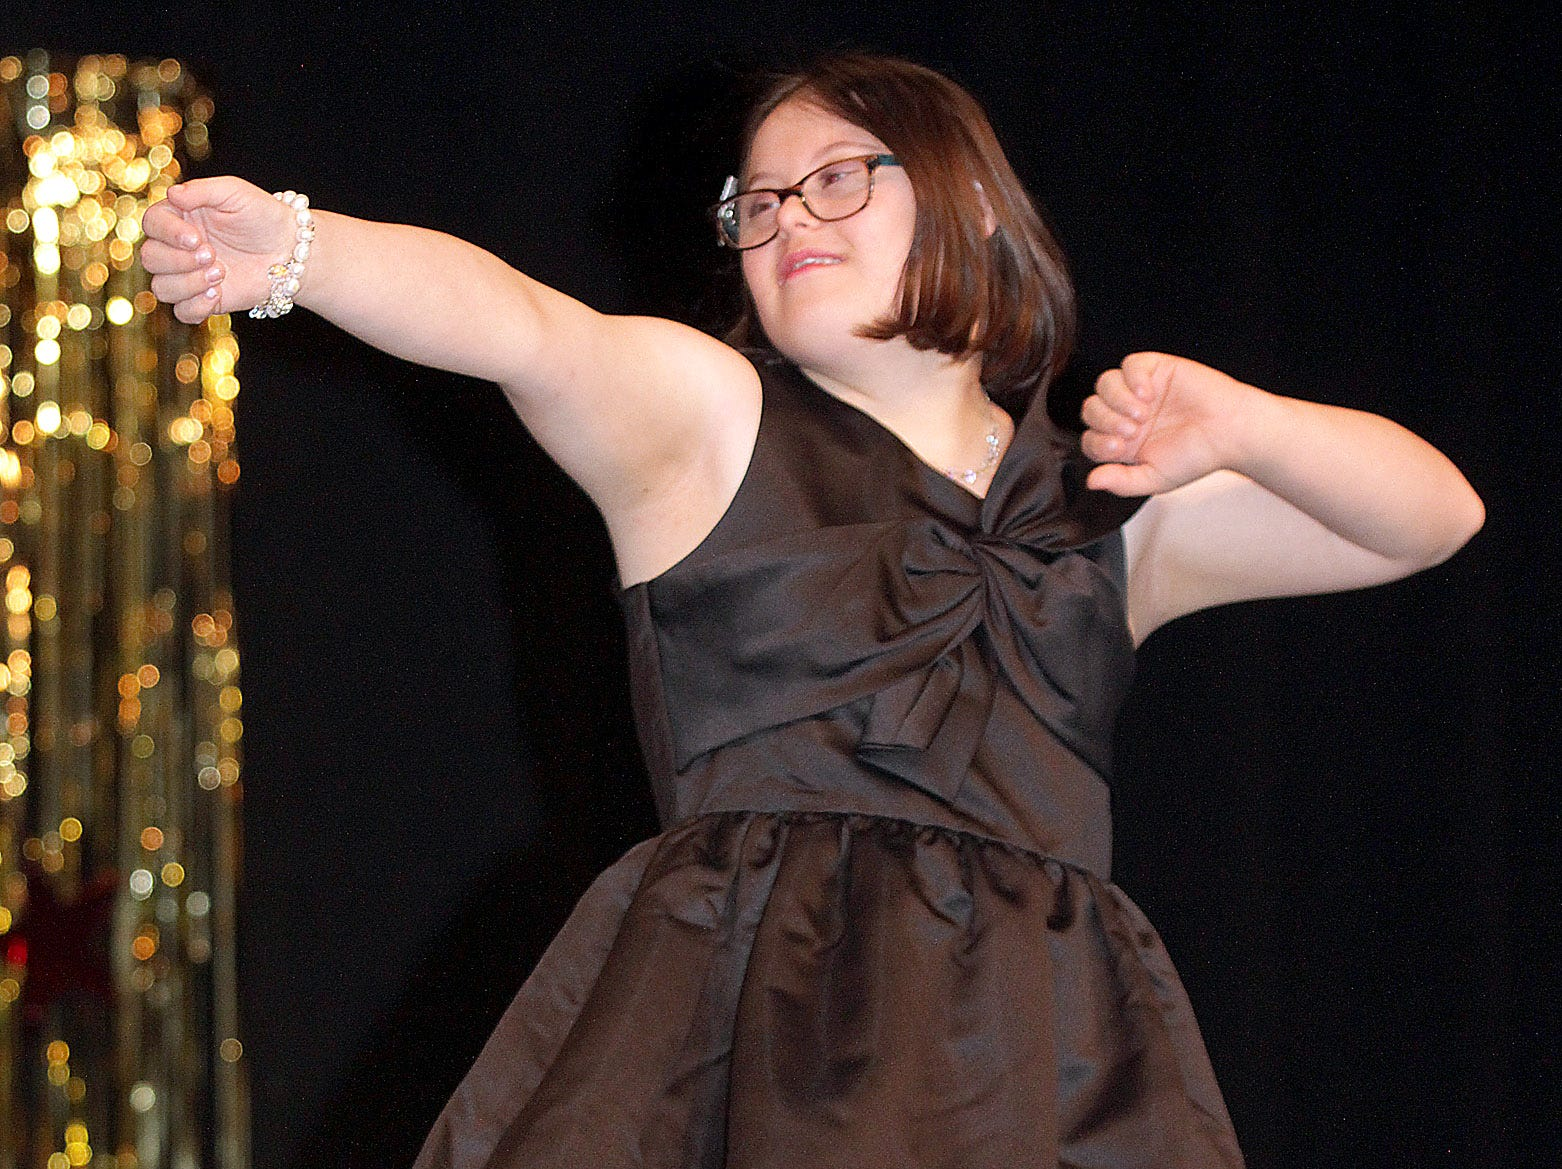 Lilli Reep (15) does some dance moves at The Sparkle Pageant at Pope John Paul II High School on Saturday, March 30, 2019.